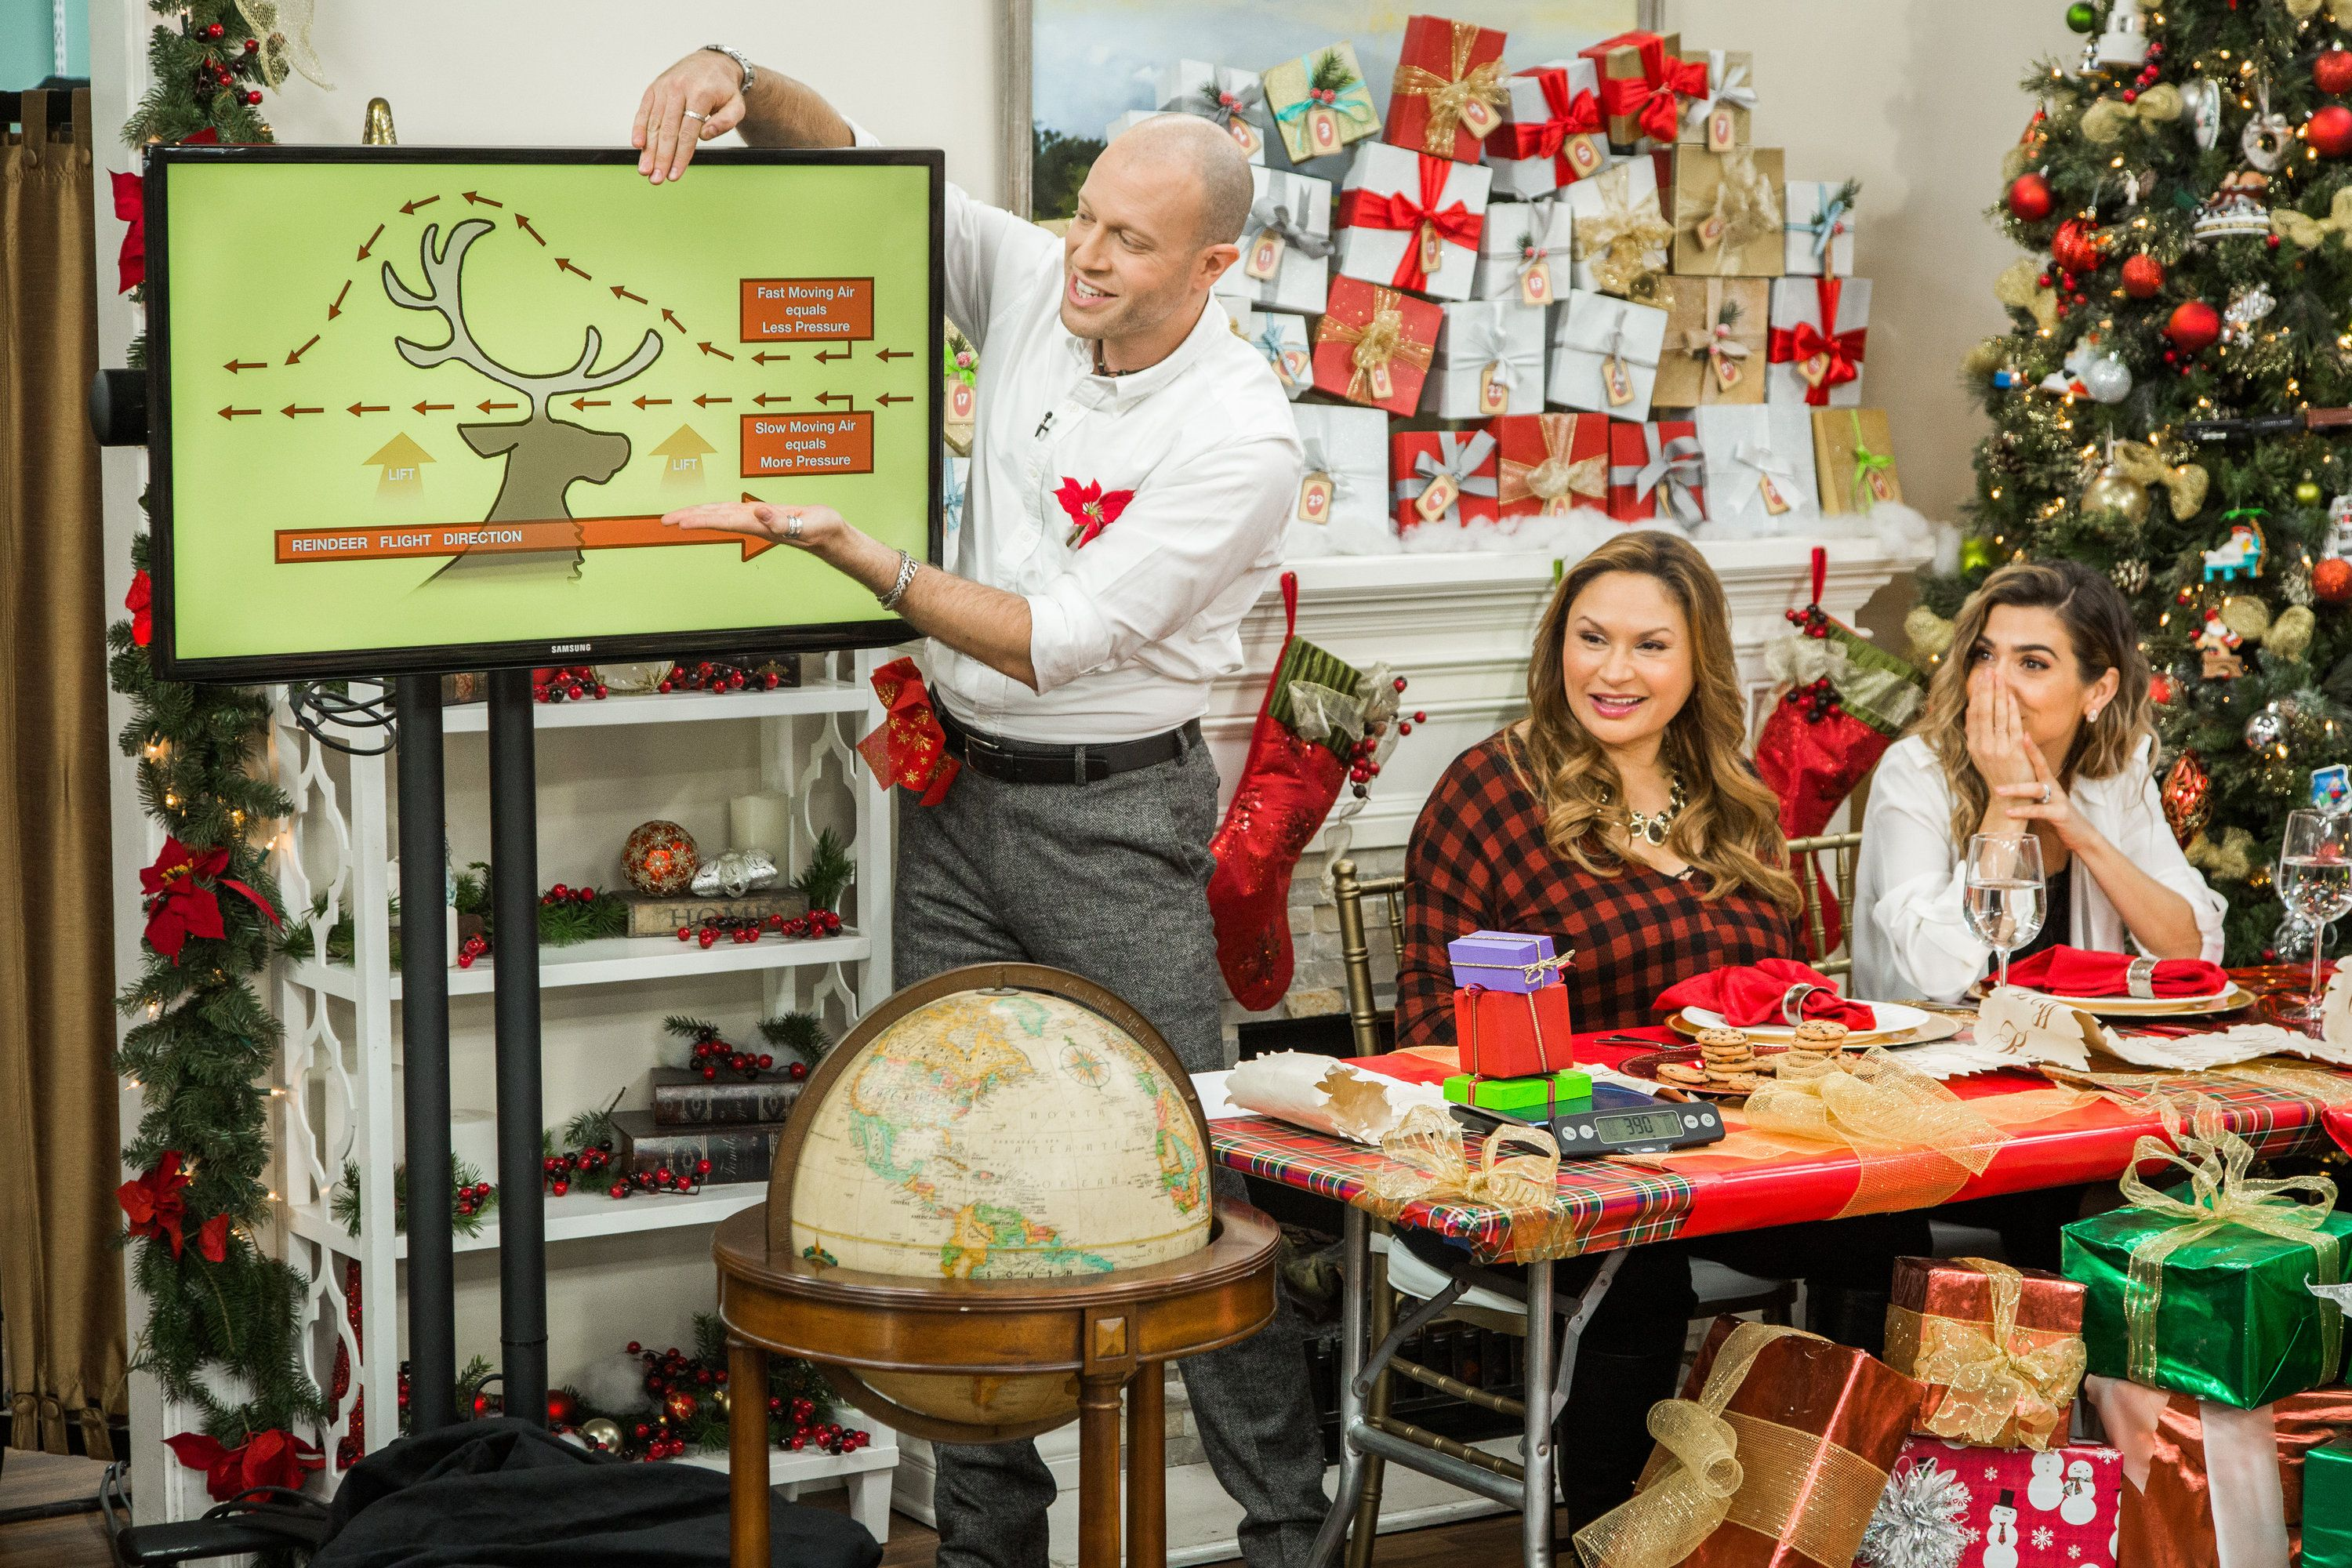 DIY Stocking Holder-Home & Family, Hallmark Channel, 12/23/2016